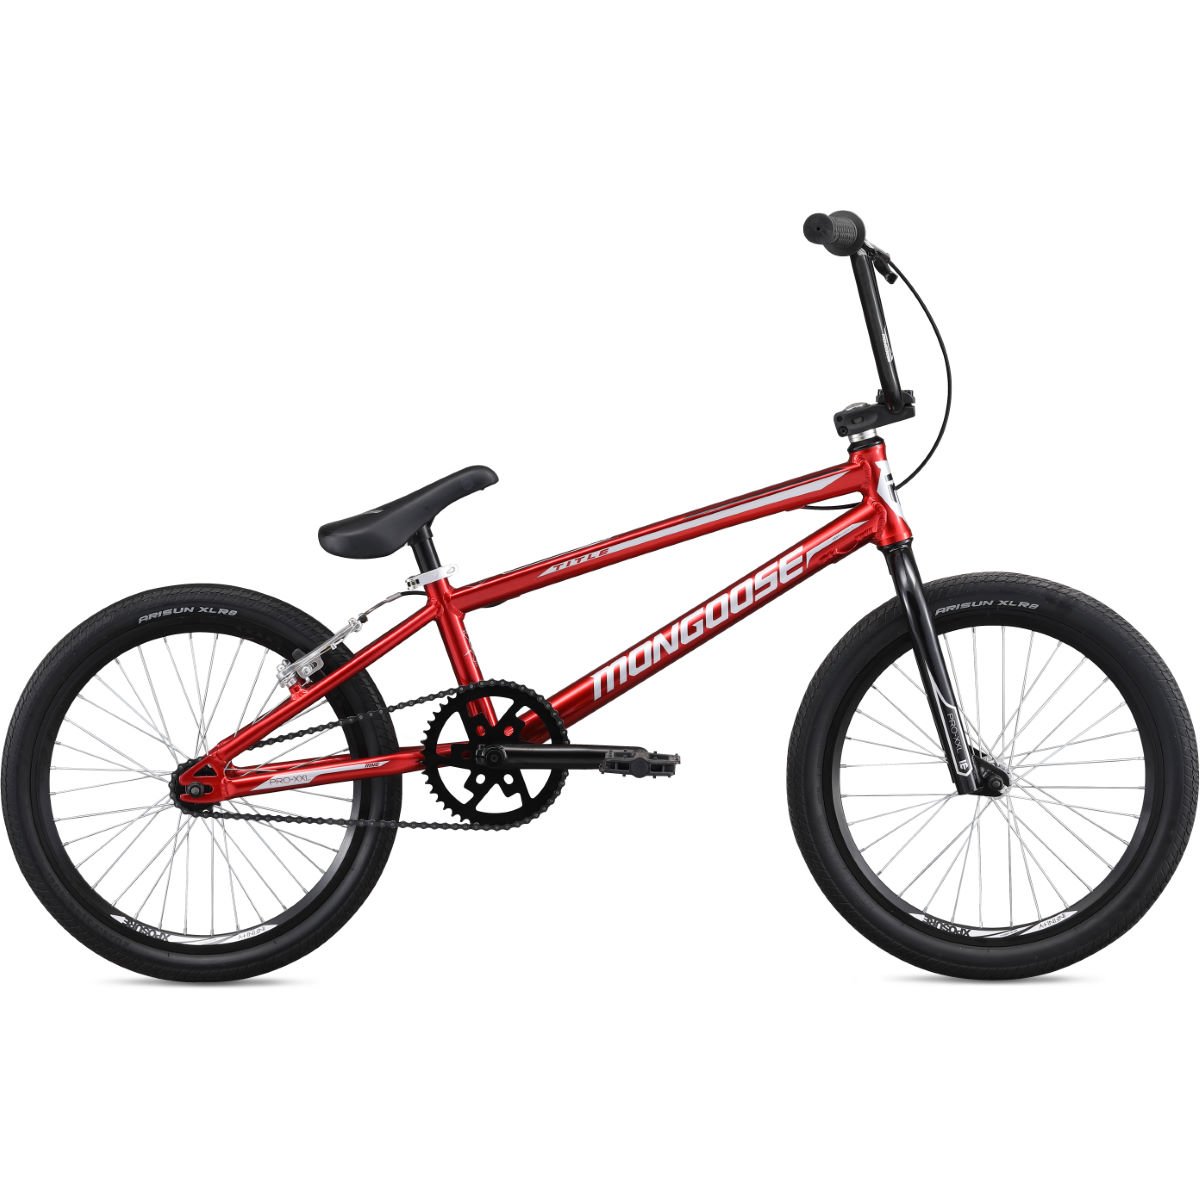 Image of Mongoose Title Pro XXL BMX Bike Race BMX Bikes